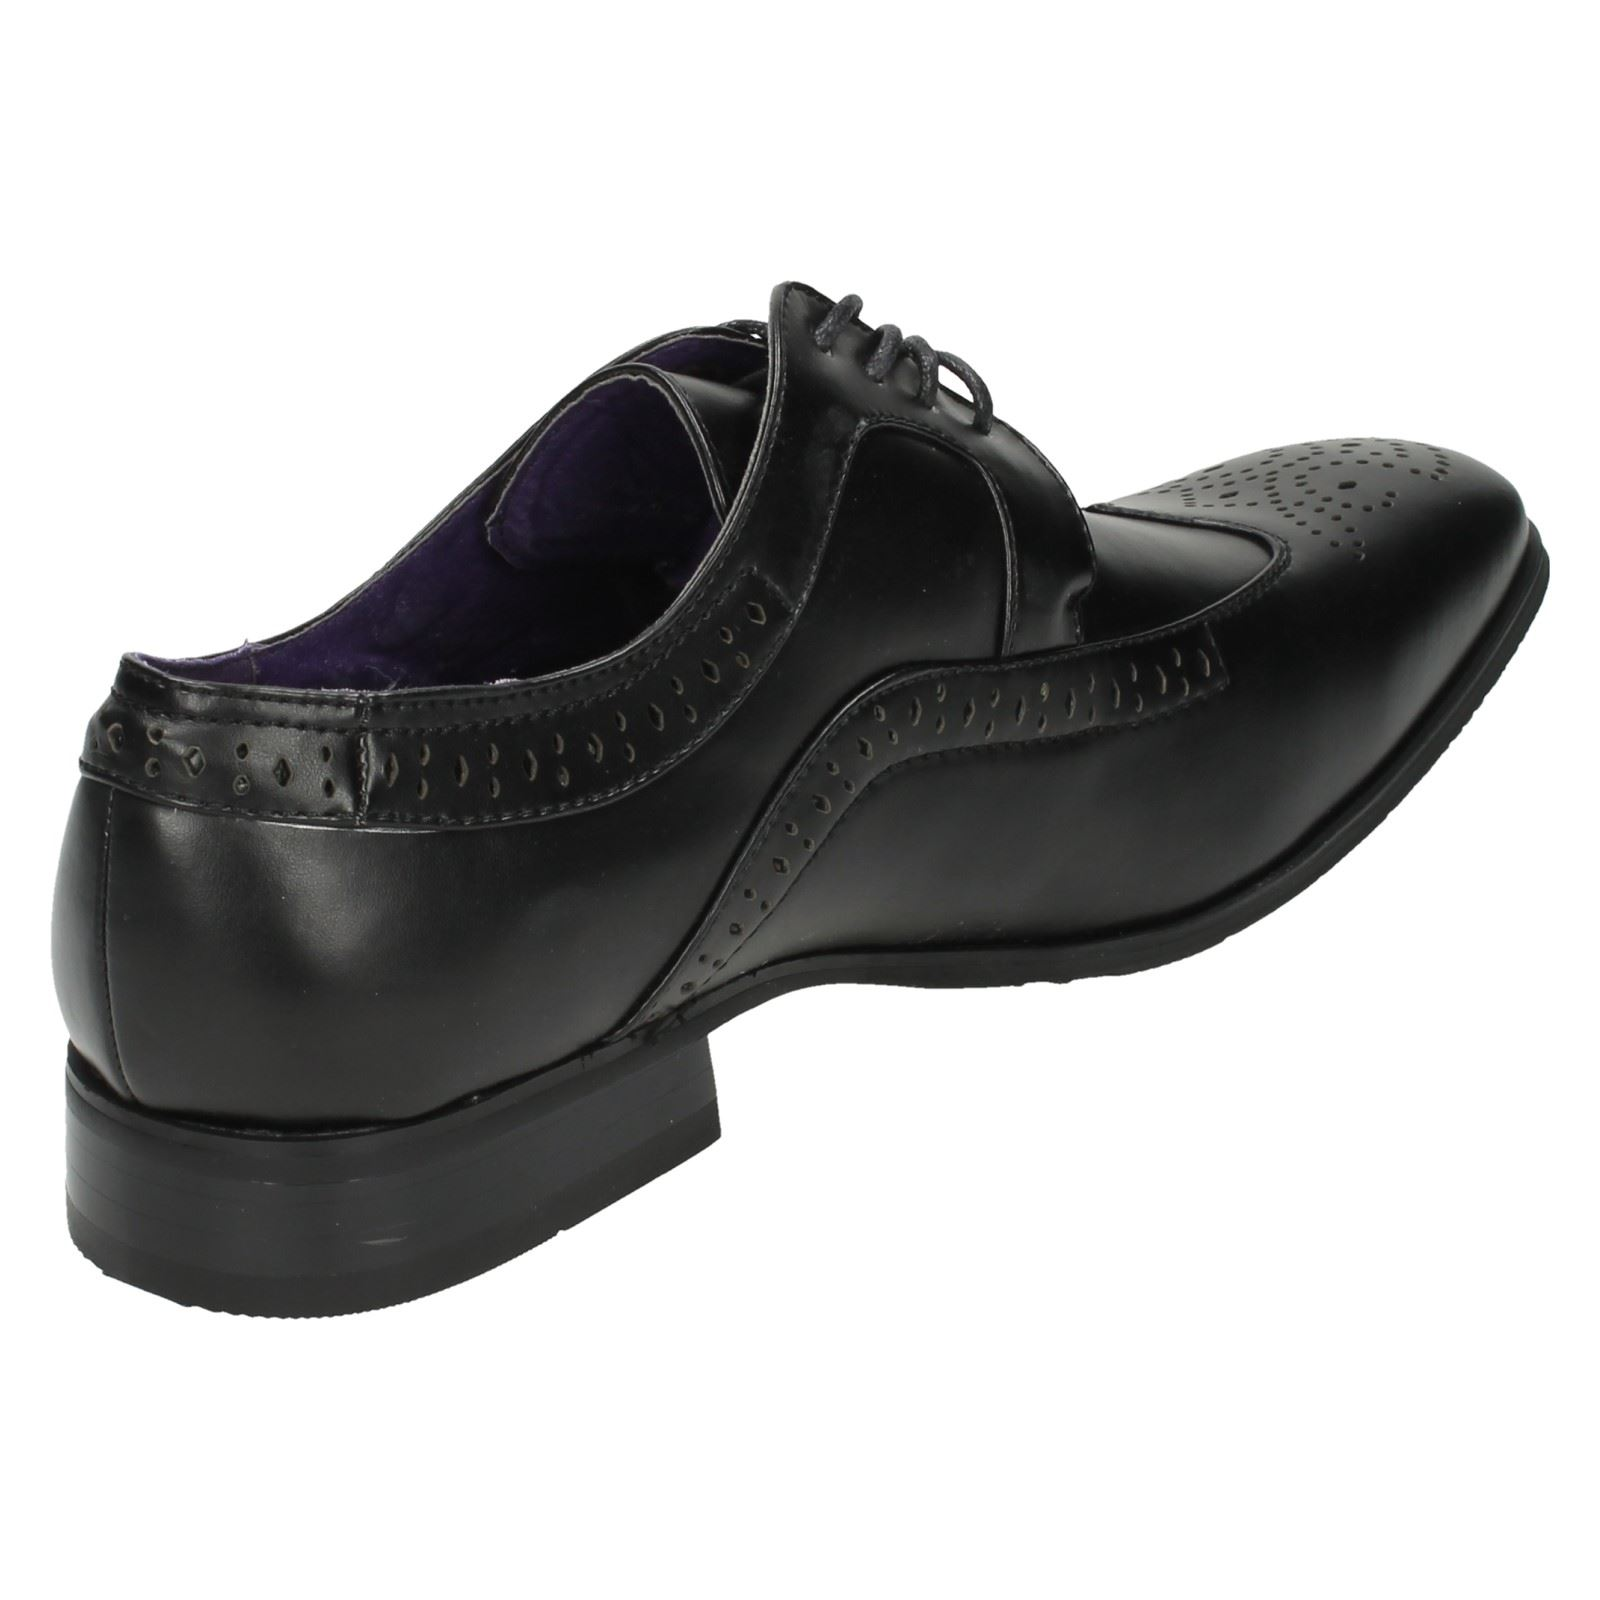 Mens Flat Formal Lace Up Brogue Shoes